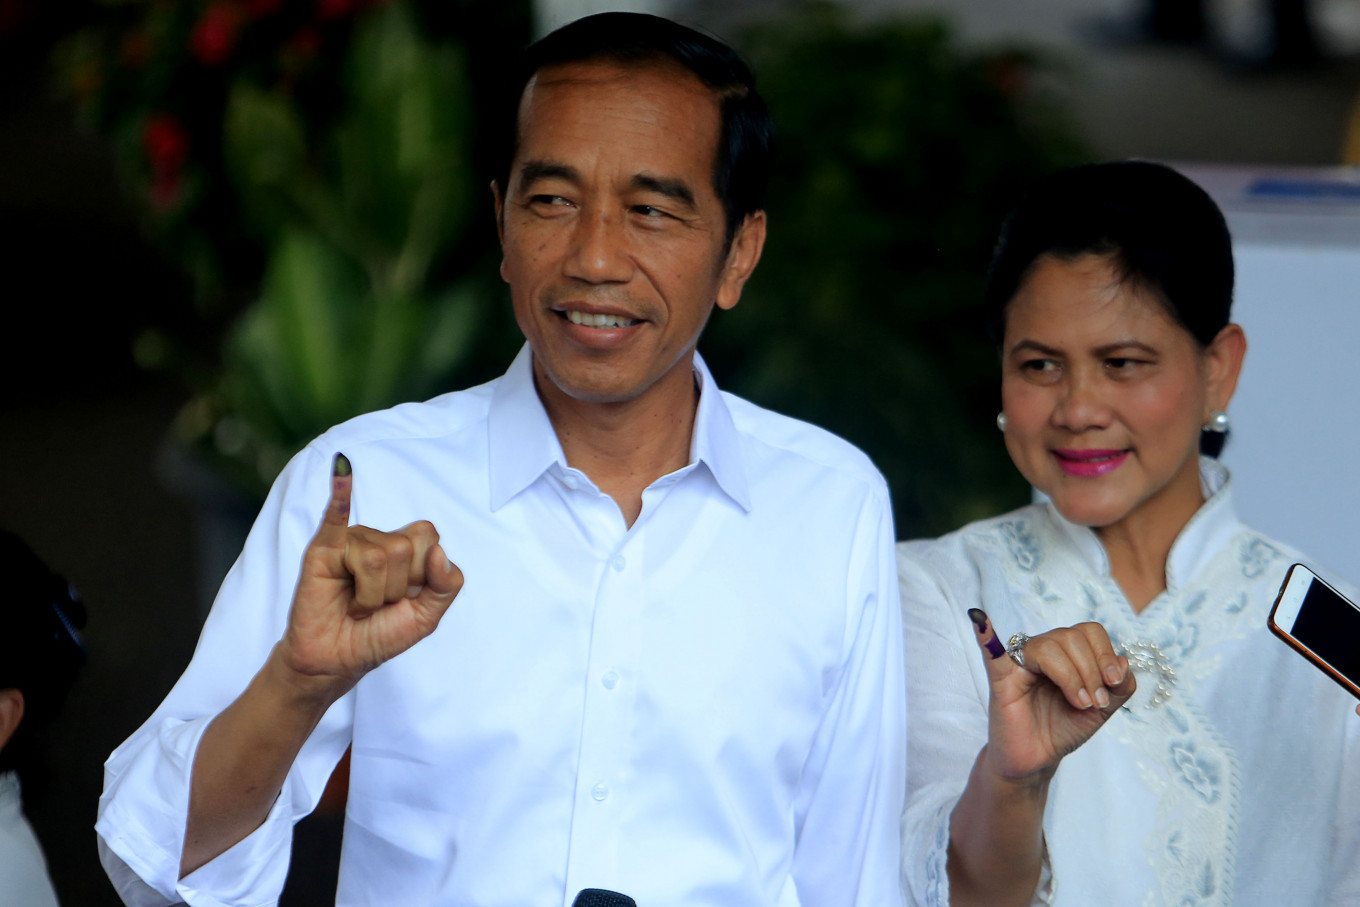 IT'S OVER: JOKOWI WINS